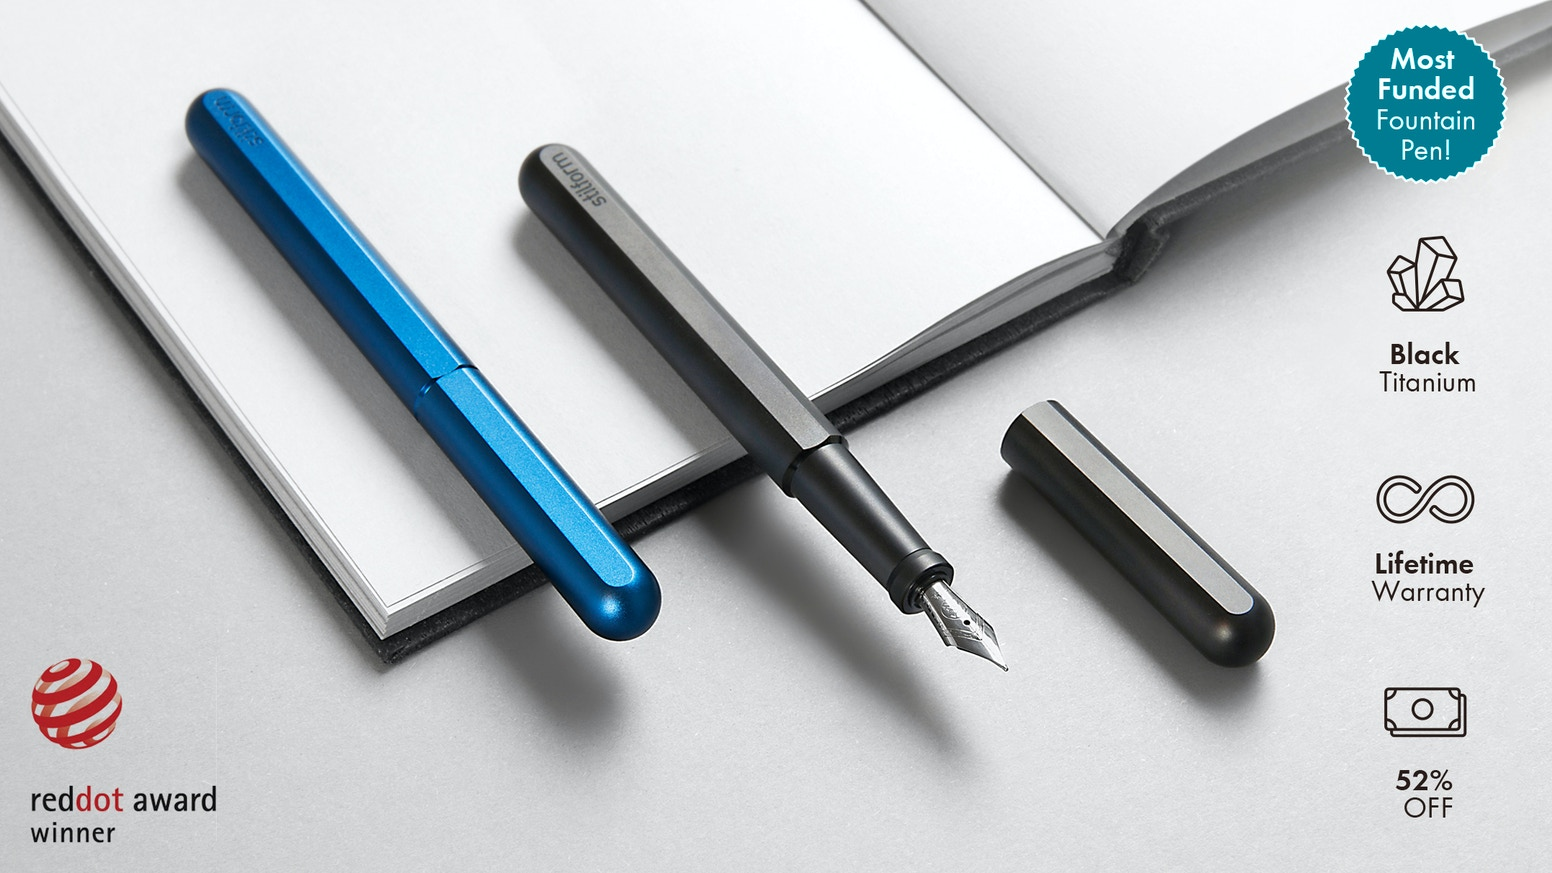 The award-winning Stilform Fountain Pen with a unique self-aligning cap and a new mechanism. Now in DLC coated titanium!